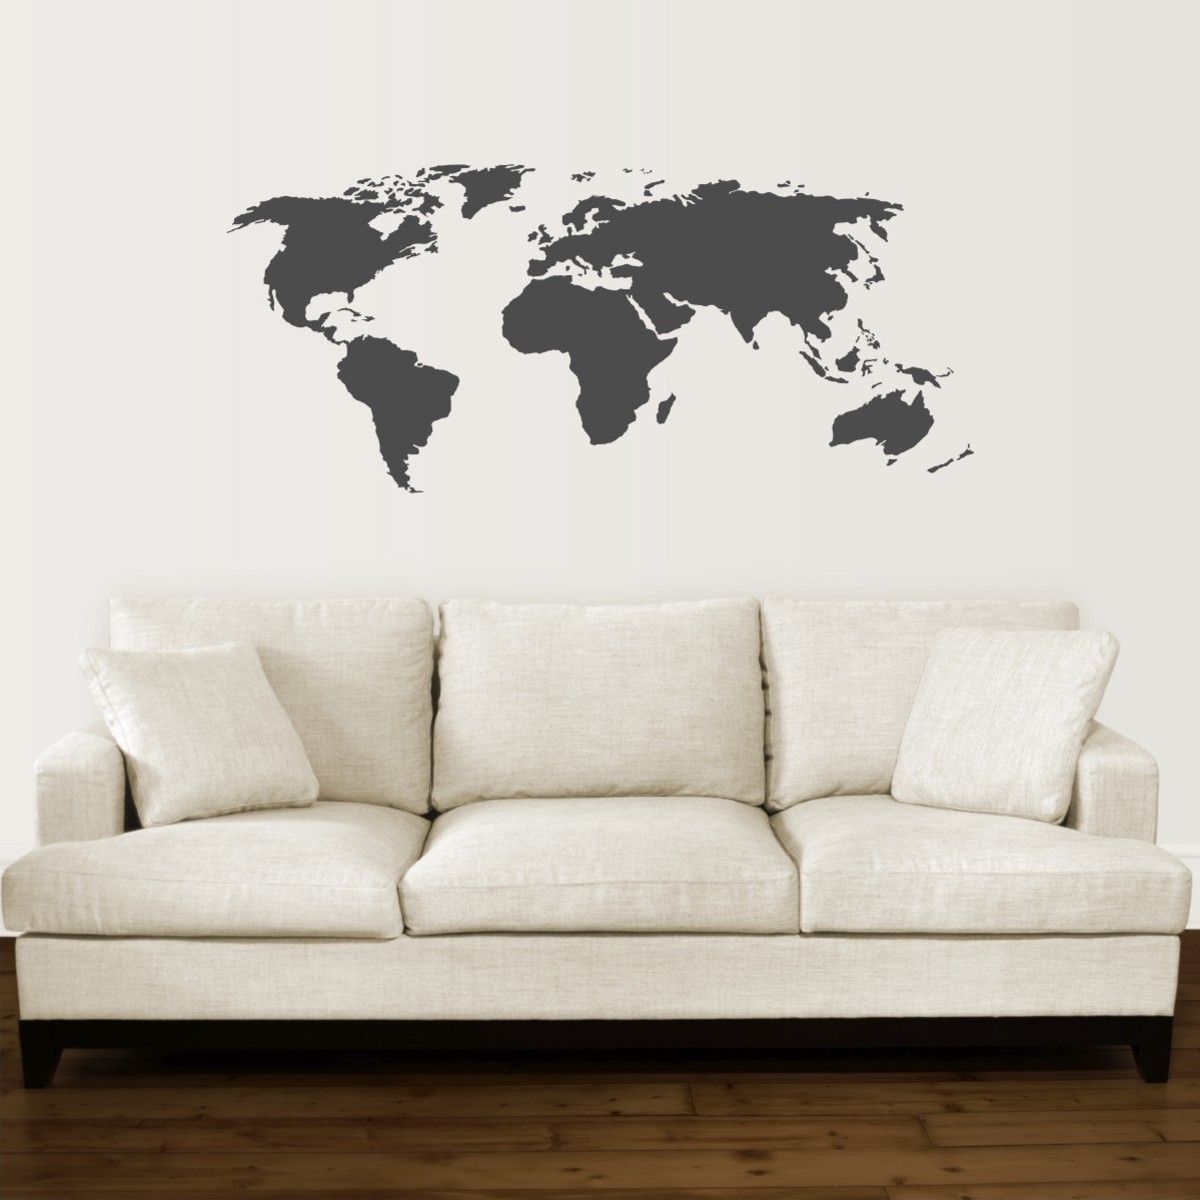 17 Cool Ideas For World Map Wall Art – Live Diy Ideas In Most Recently Released Maps Wall Art (View 1 of 20)